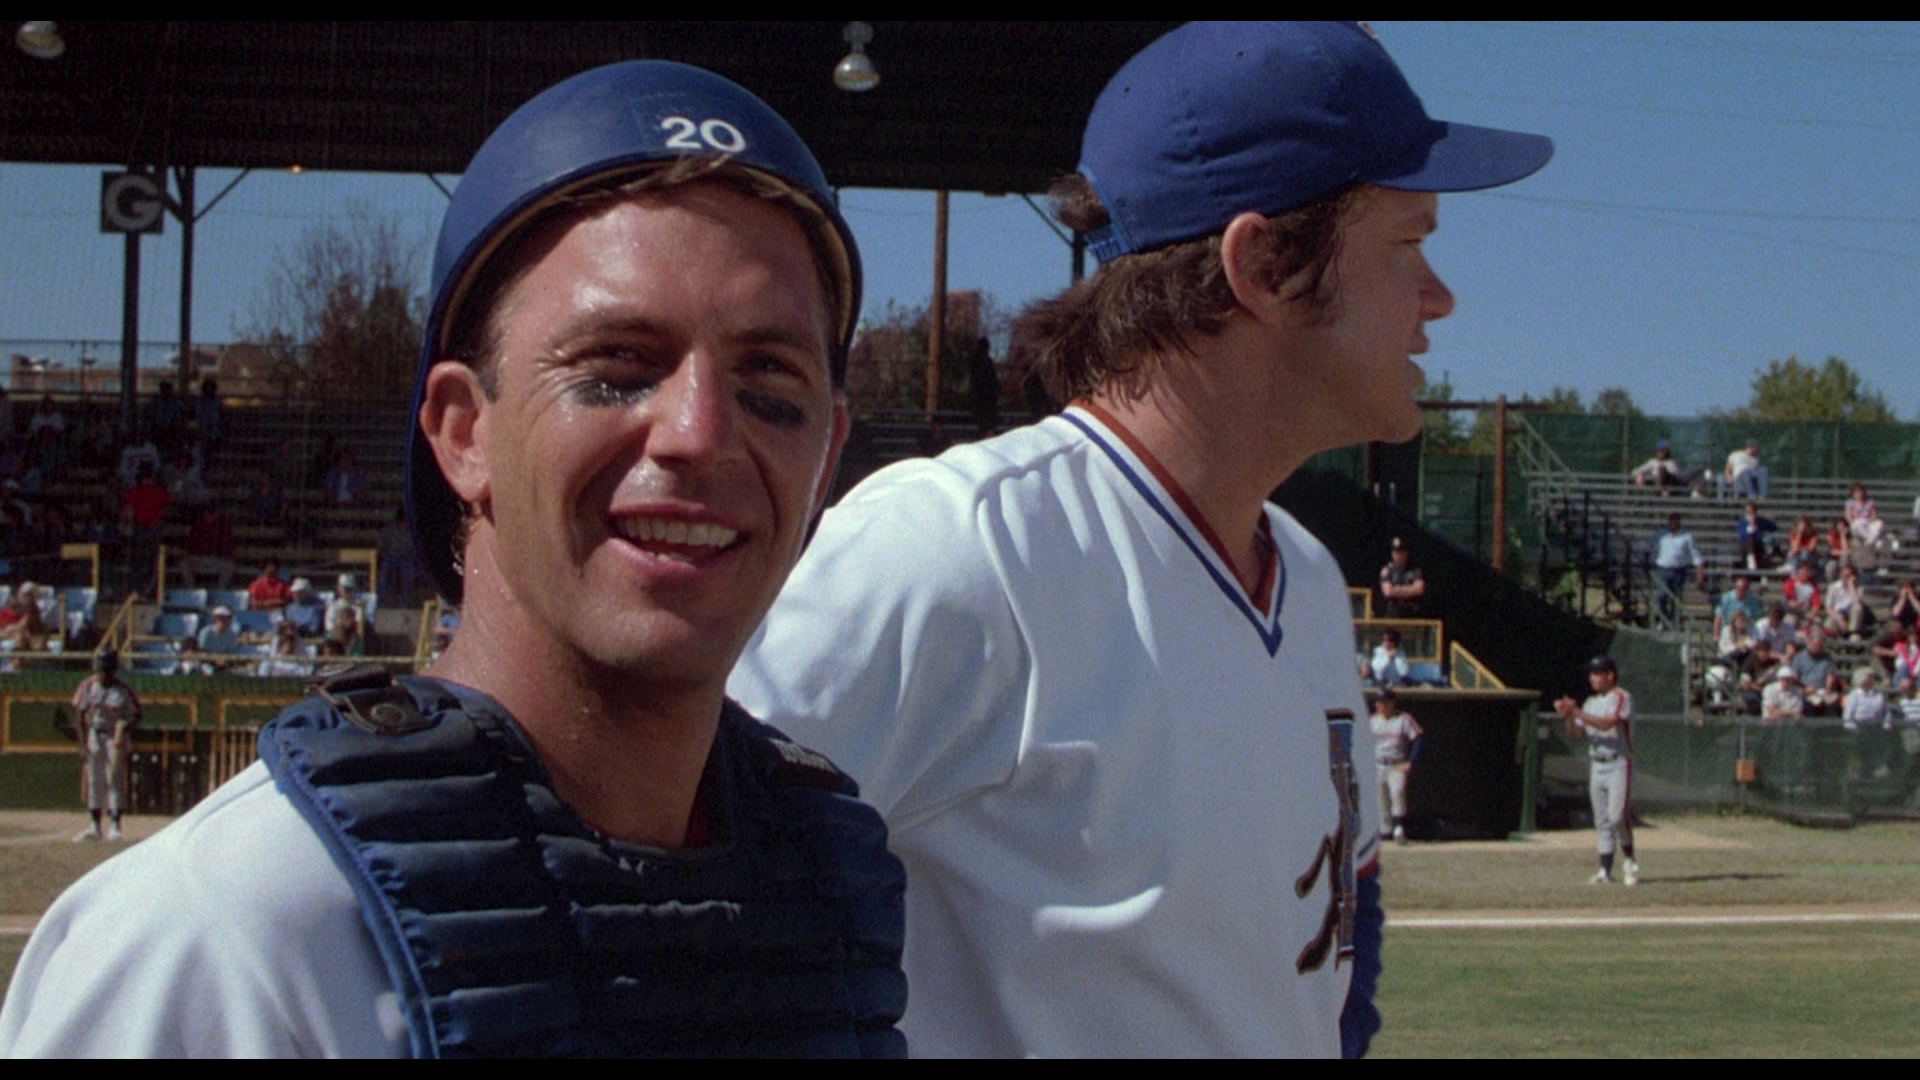 ... and baseball season for that matter bull durham 1988 is certainly